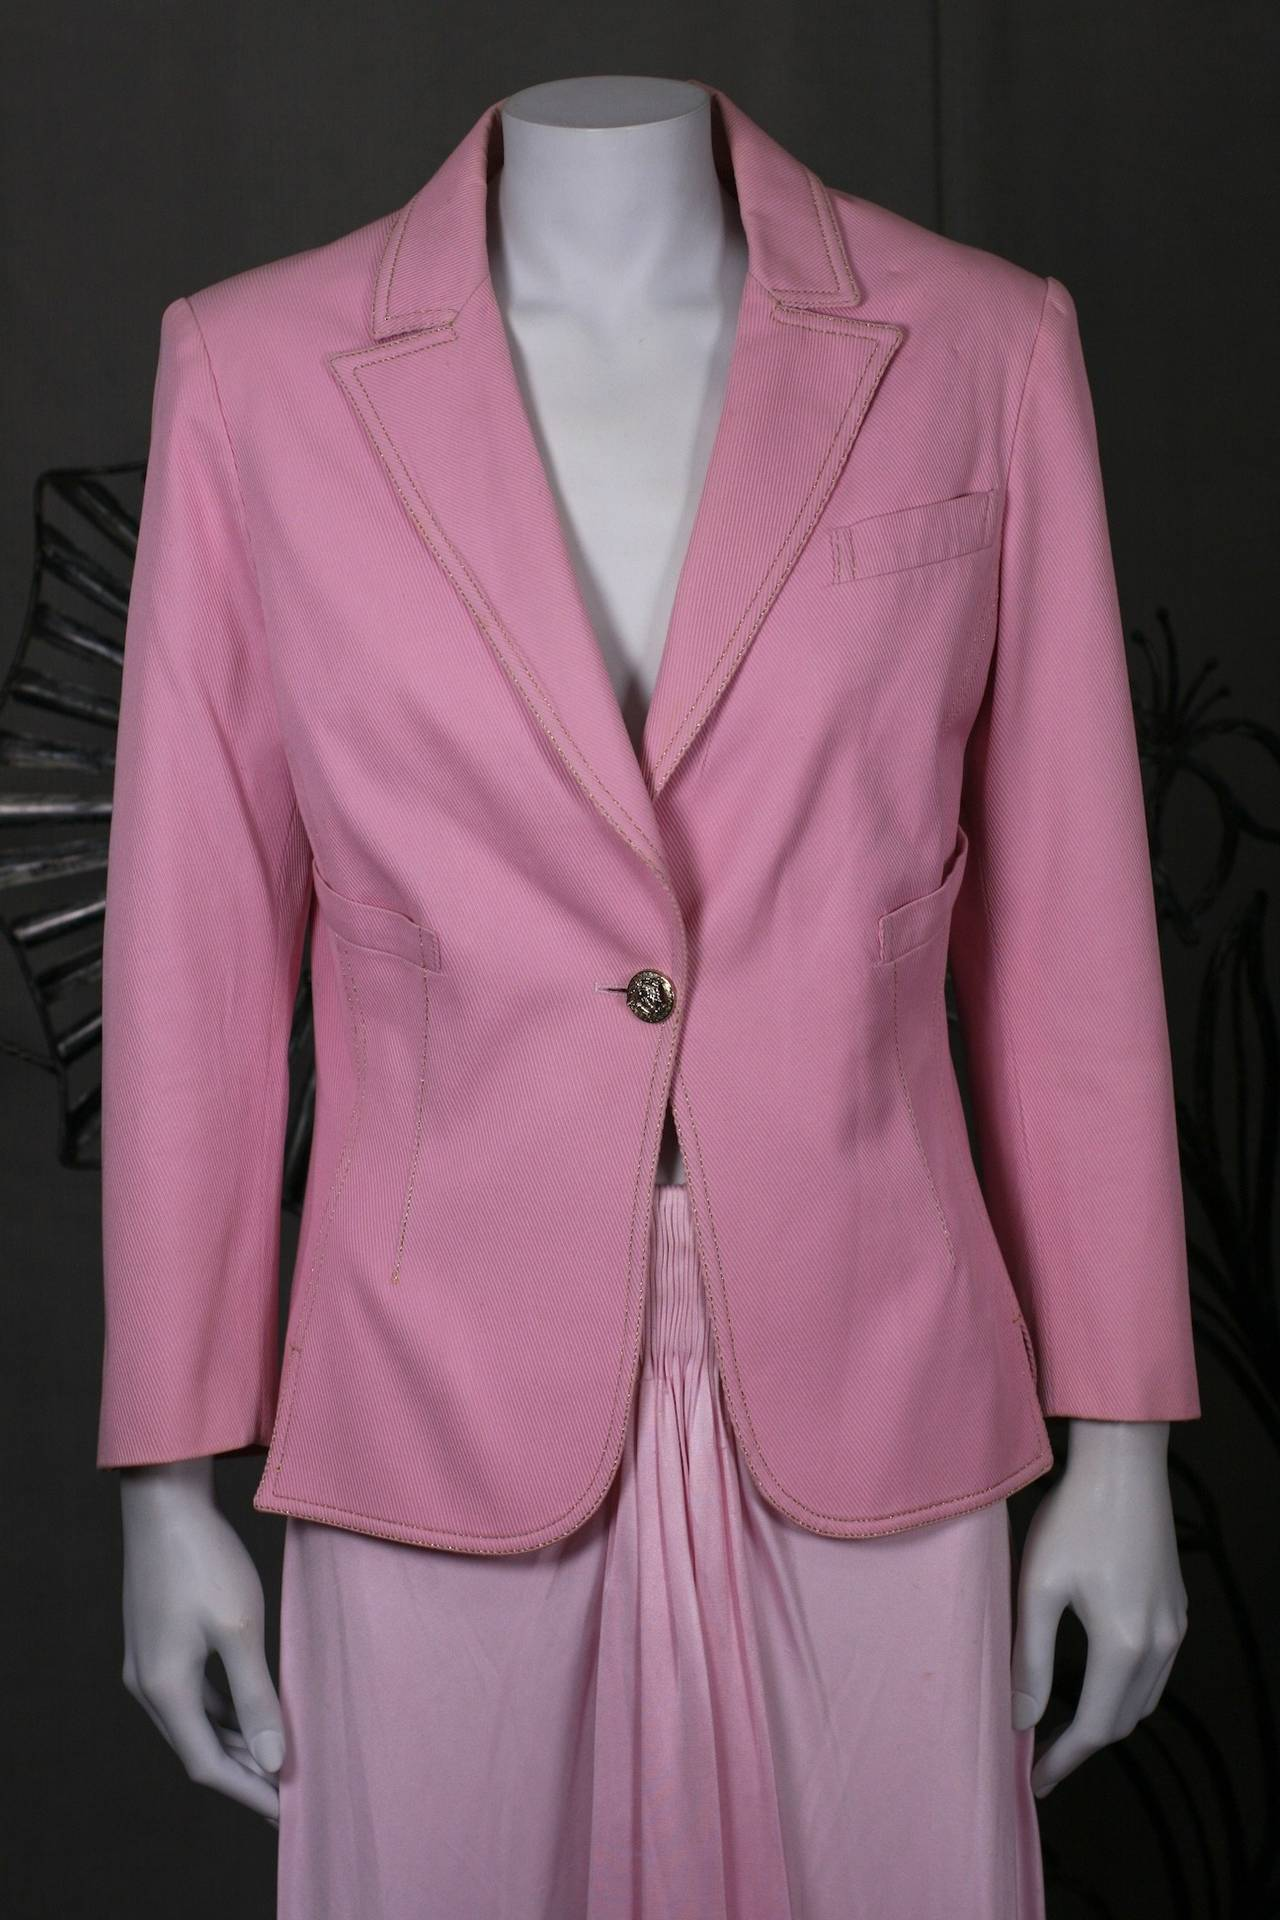 Gianni Versace Pink Denim Suit For Sale At 1stdibs